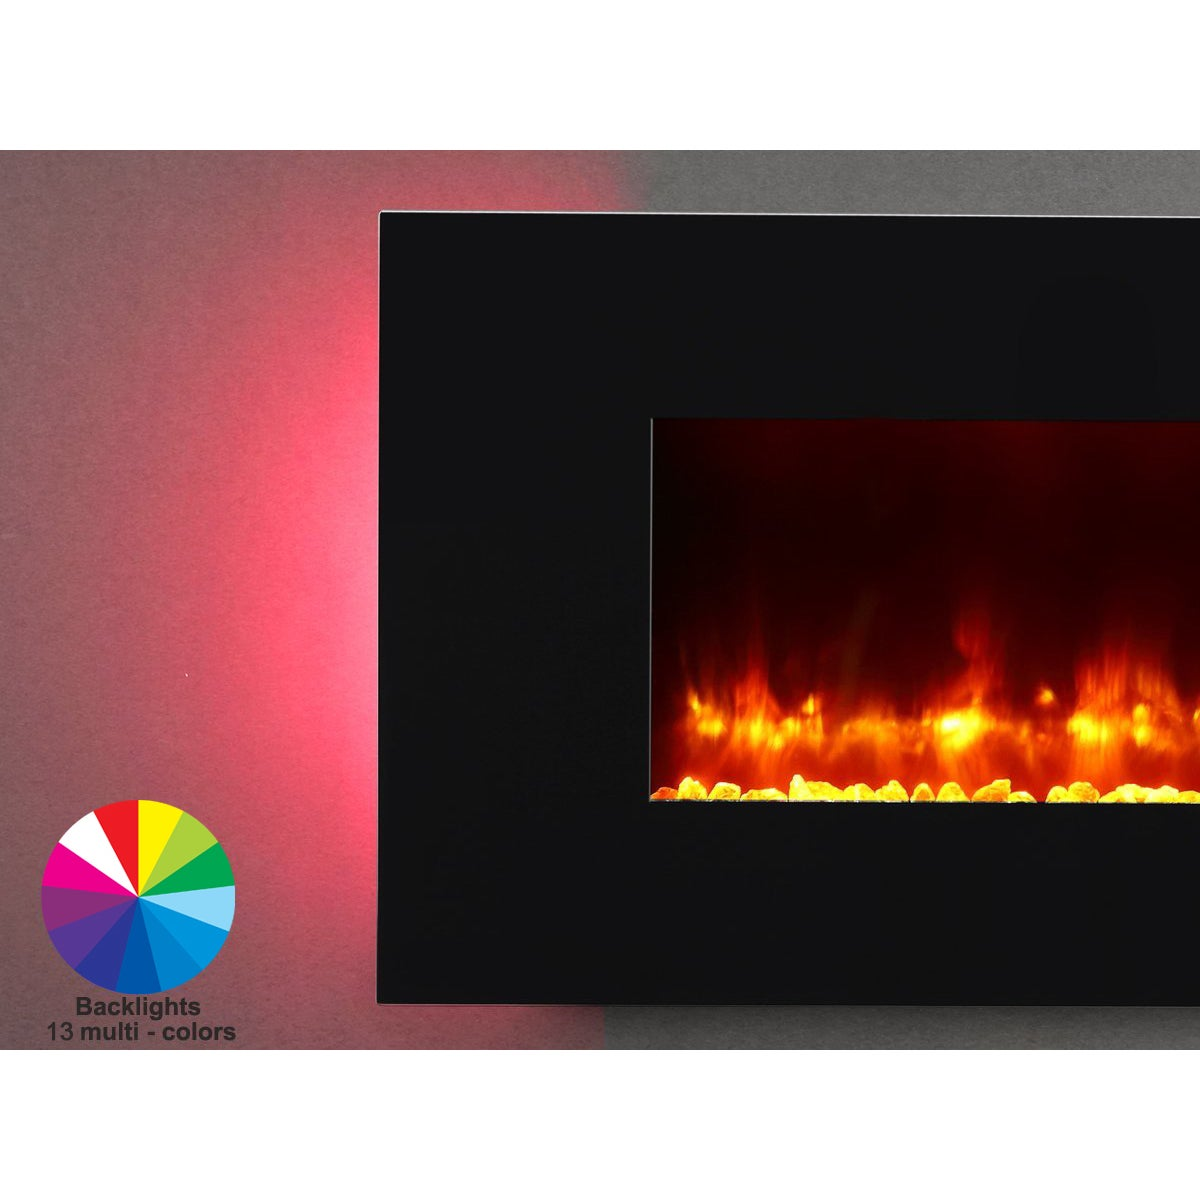 Astonishing Puraflame 47 Inch Rossano Wall Mounted Flat Panel Electric Fireplace Heater Home Interior And Landscaping Ologienasavecom